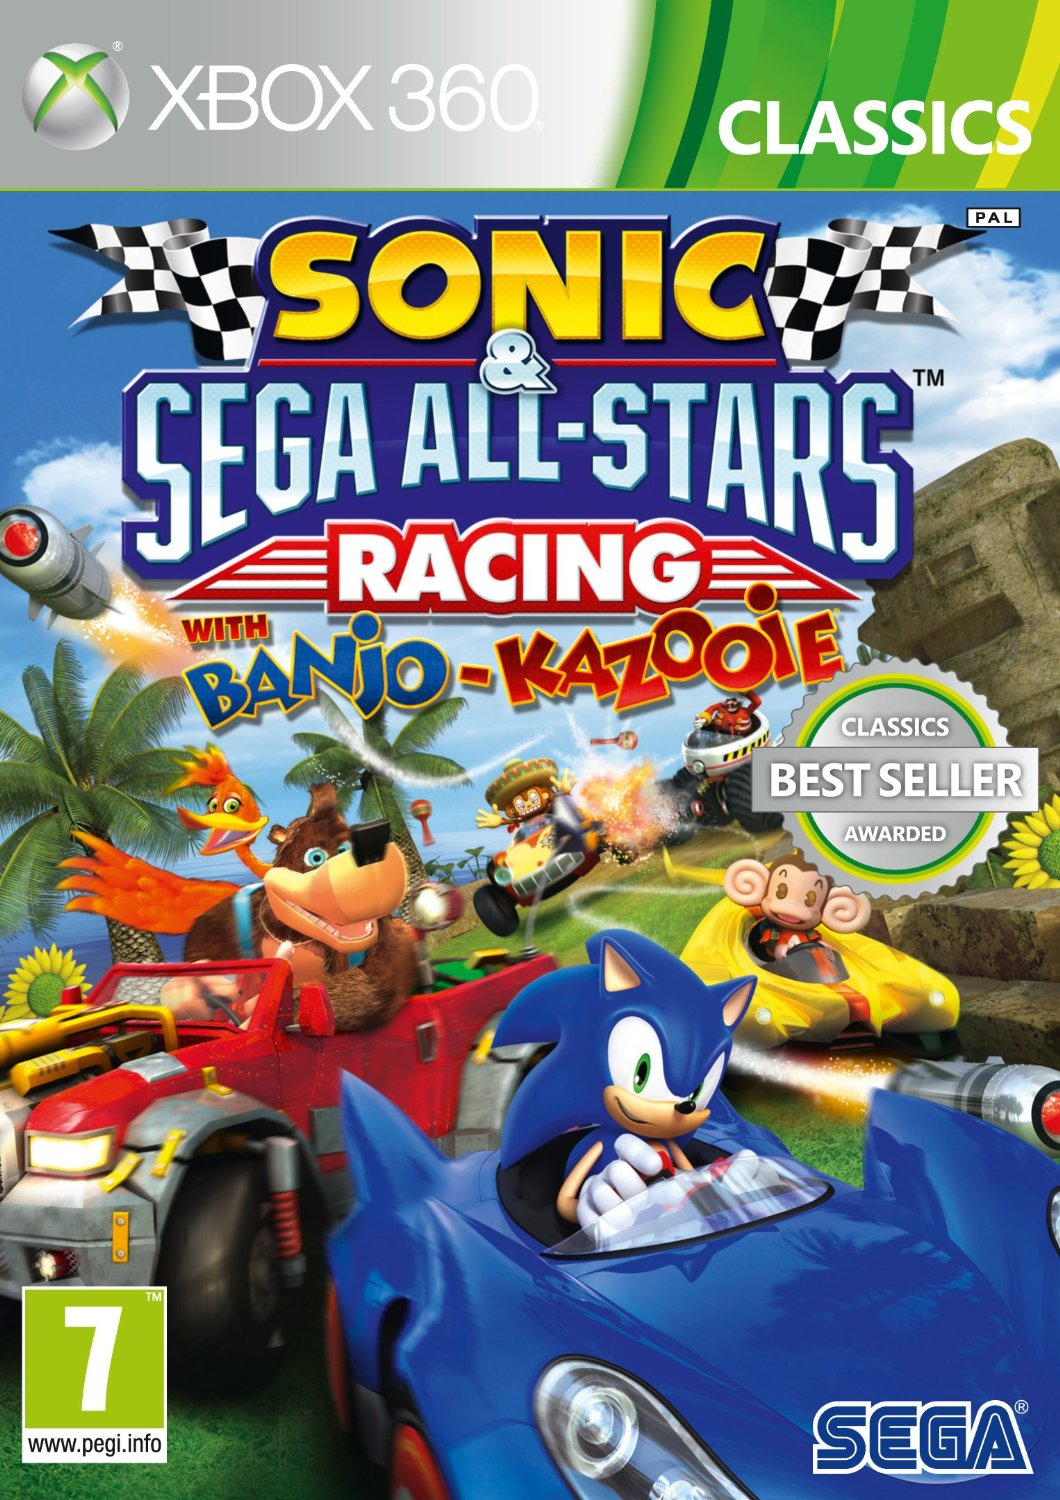 X360 Sonic and Sega All-Stars Racing with Banjo-Kazooie Nové